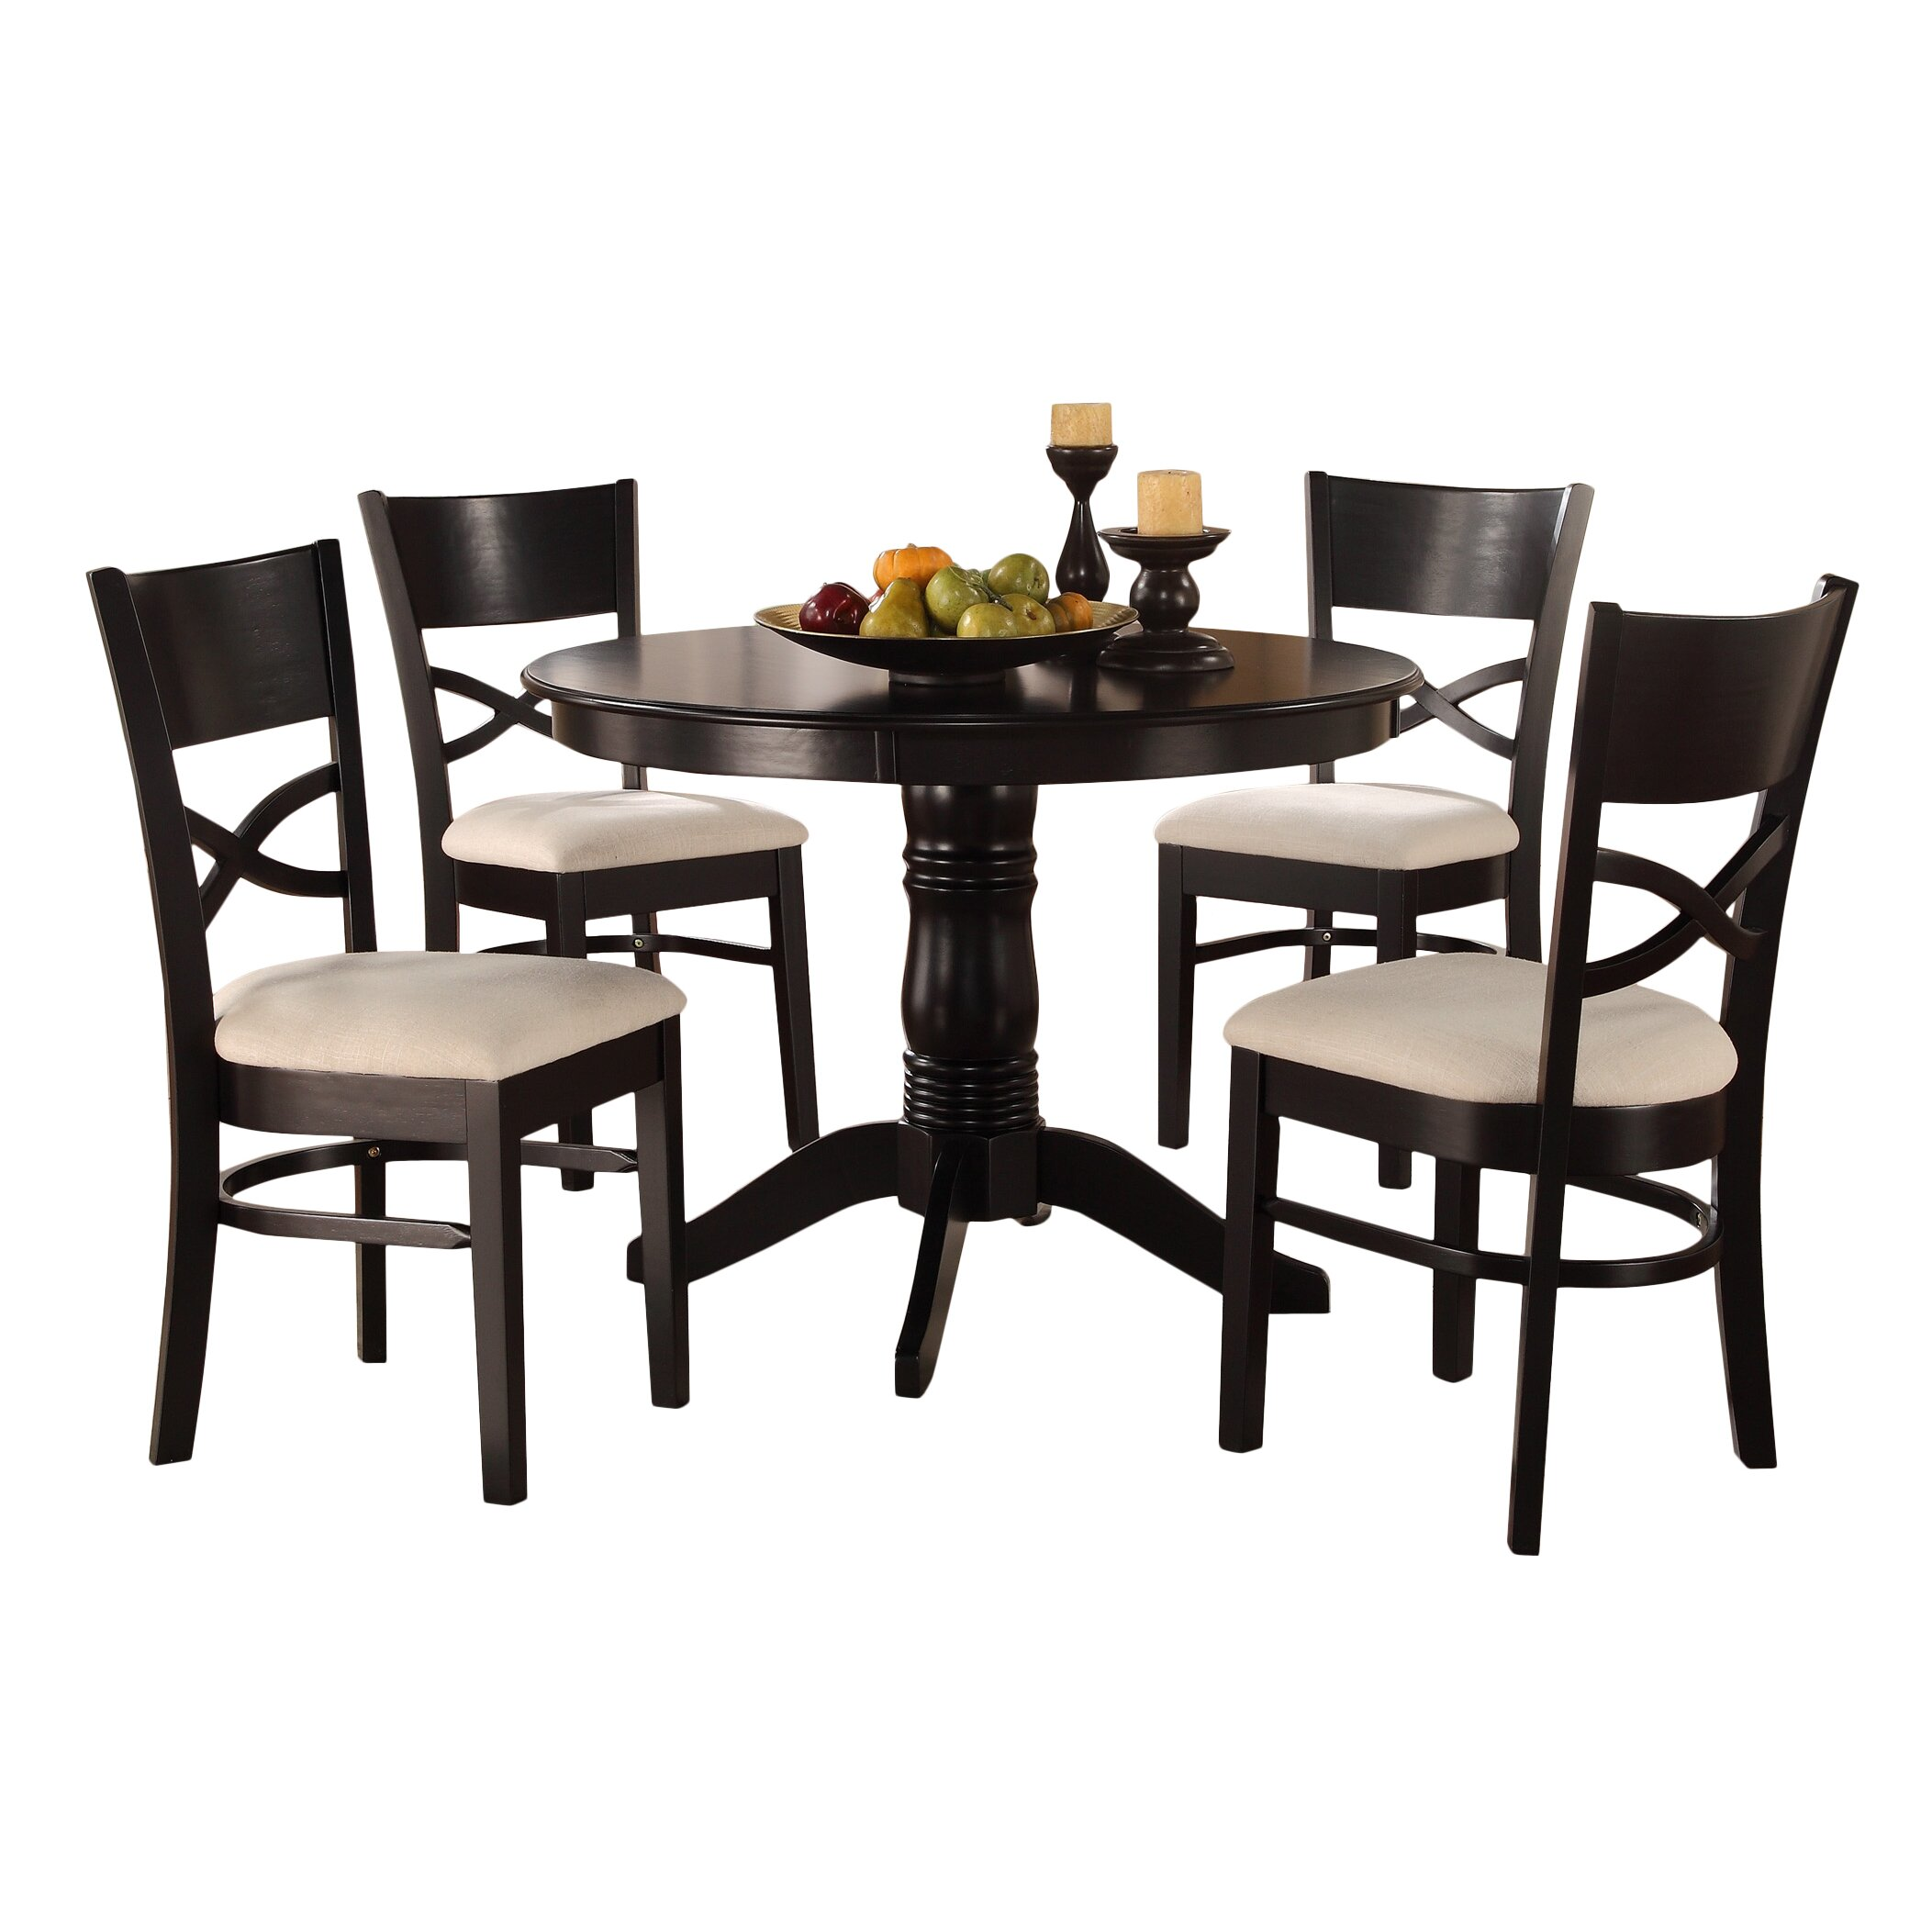 Woodhaven Hill Clancy 5 Piece Dining Set amp; Reviews  Wayfair Supply